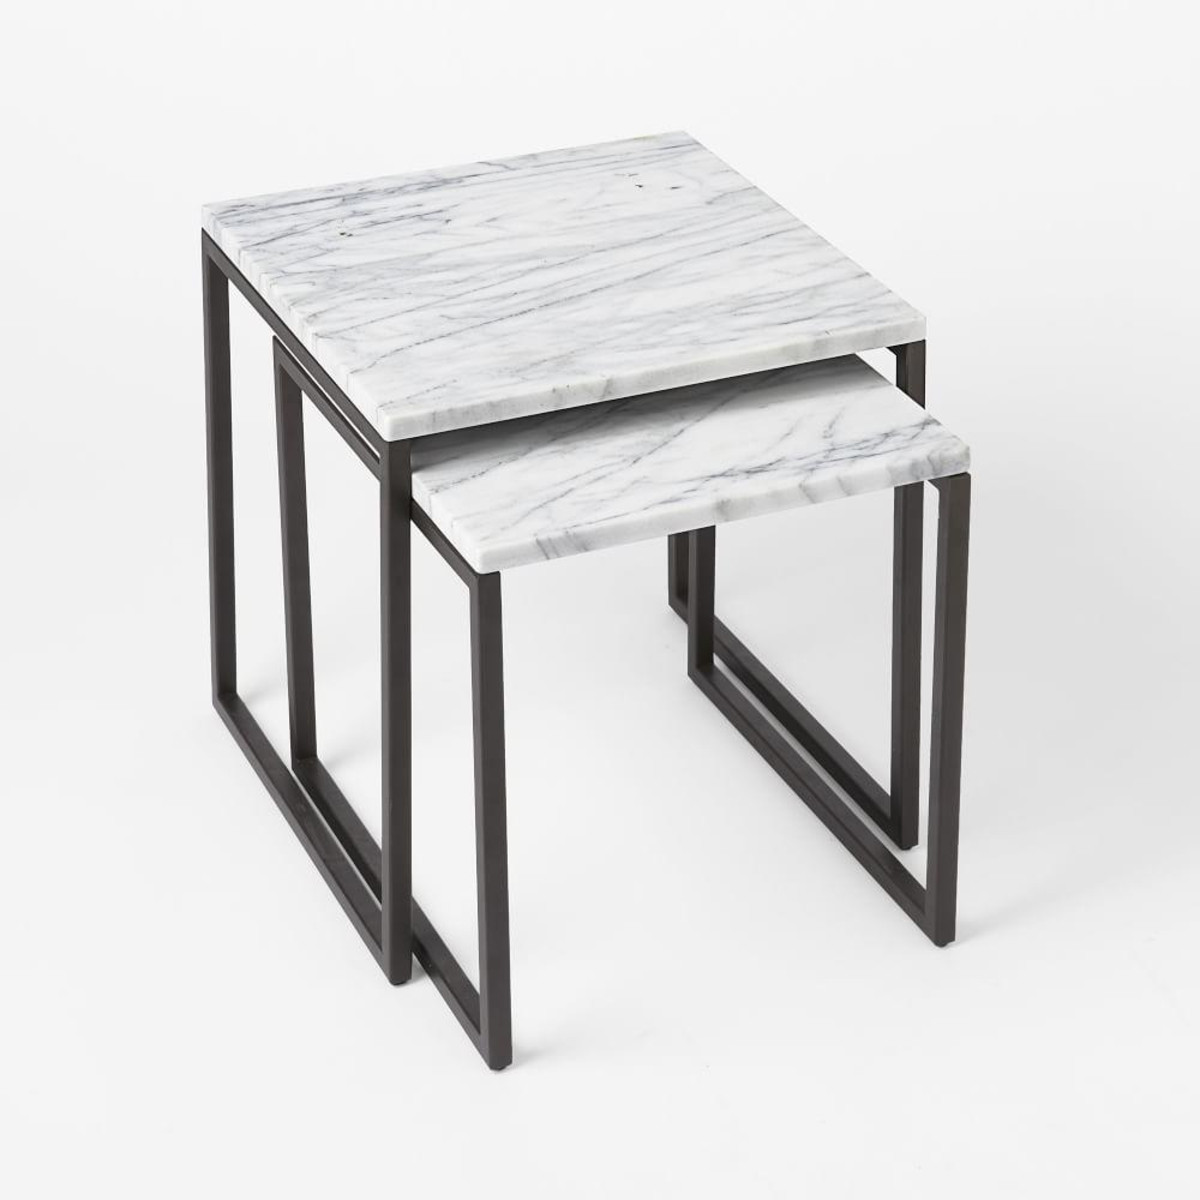 Box Frame Nesting Tables West Elm £349.00.jpg